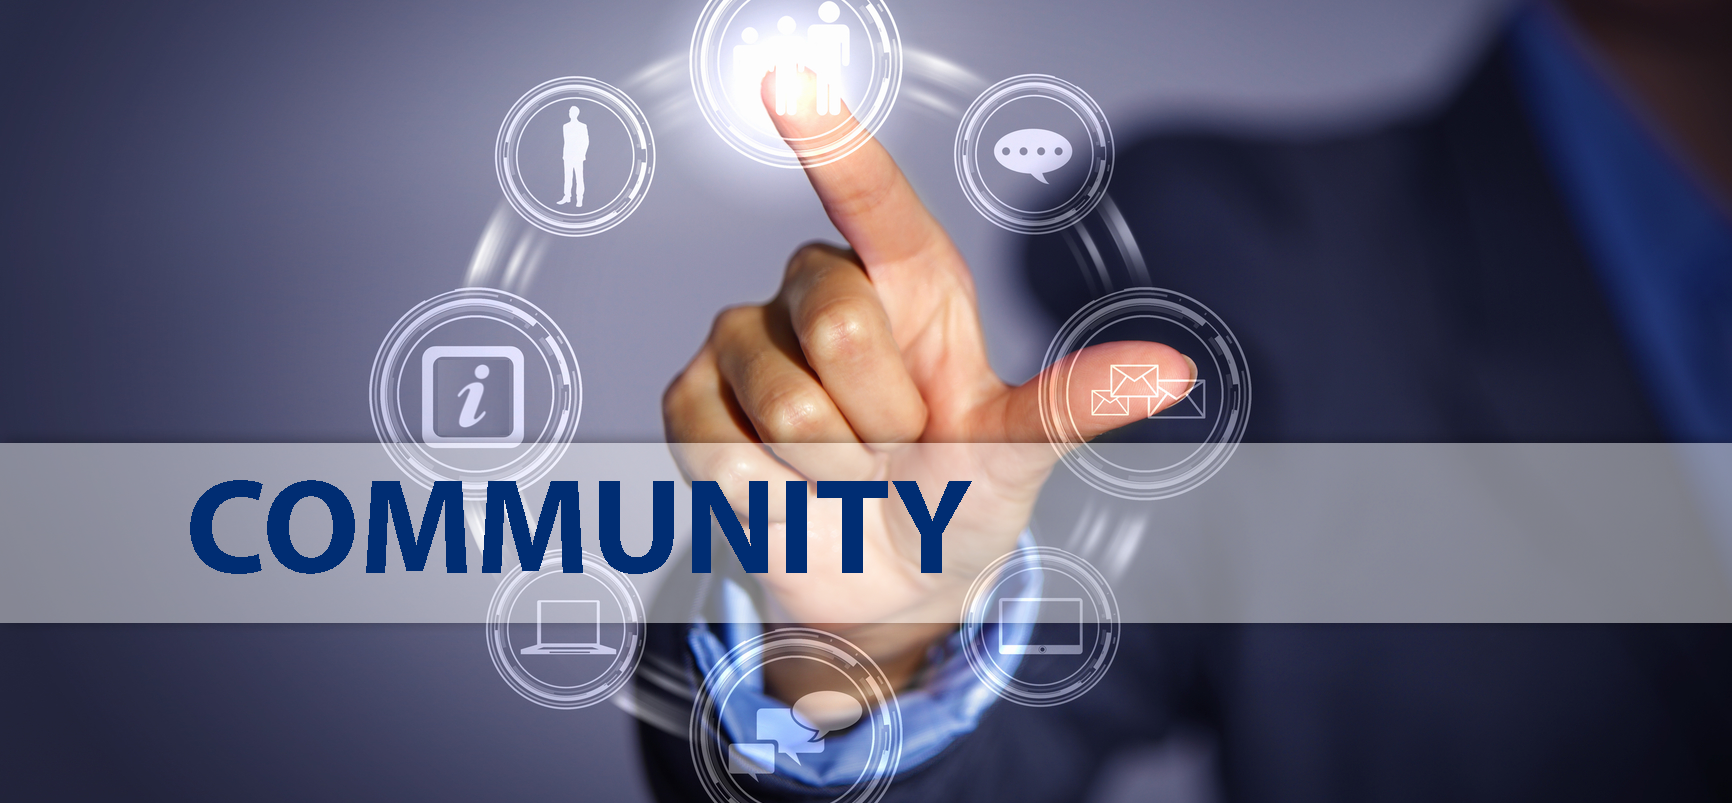 Using your community as a resource for learning